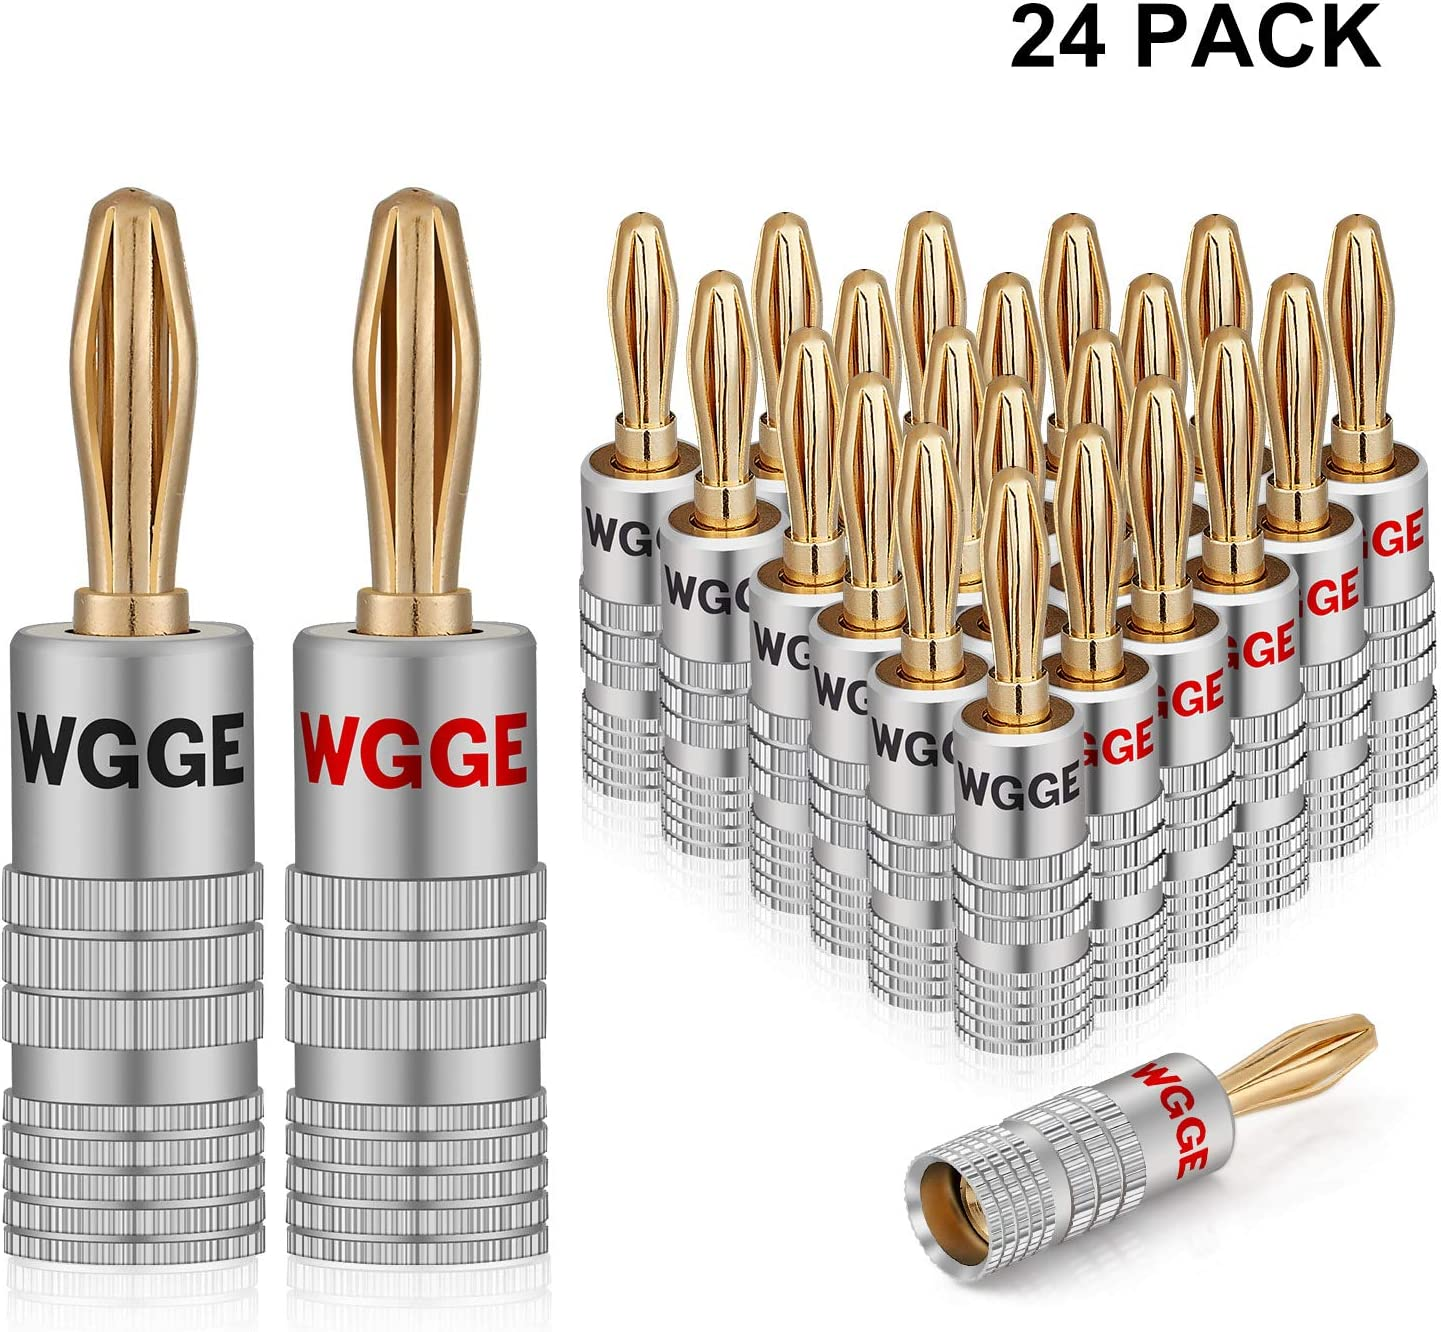 WGGE WG-009 Banana Plugs Audio Jack Connector, 24k Gold Dual Screw Lock Speaker Connector (12 Pairs (24 Plugs))